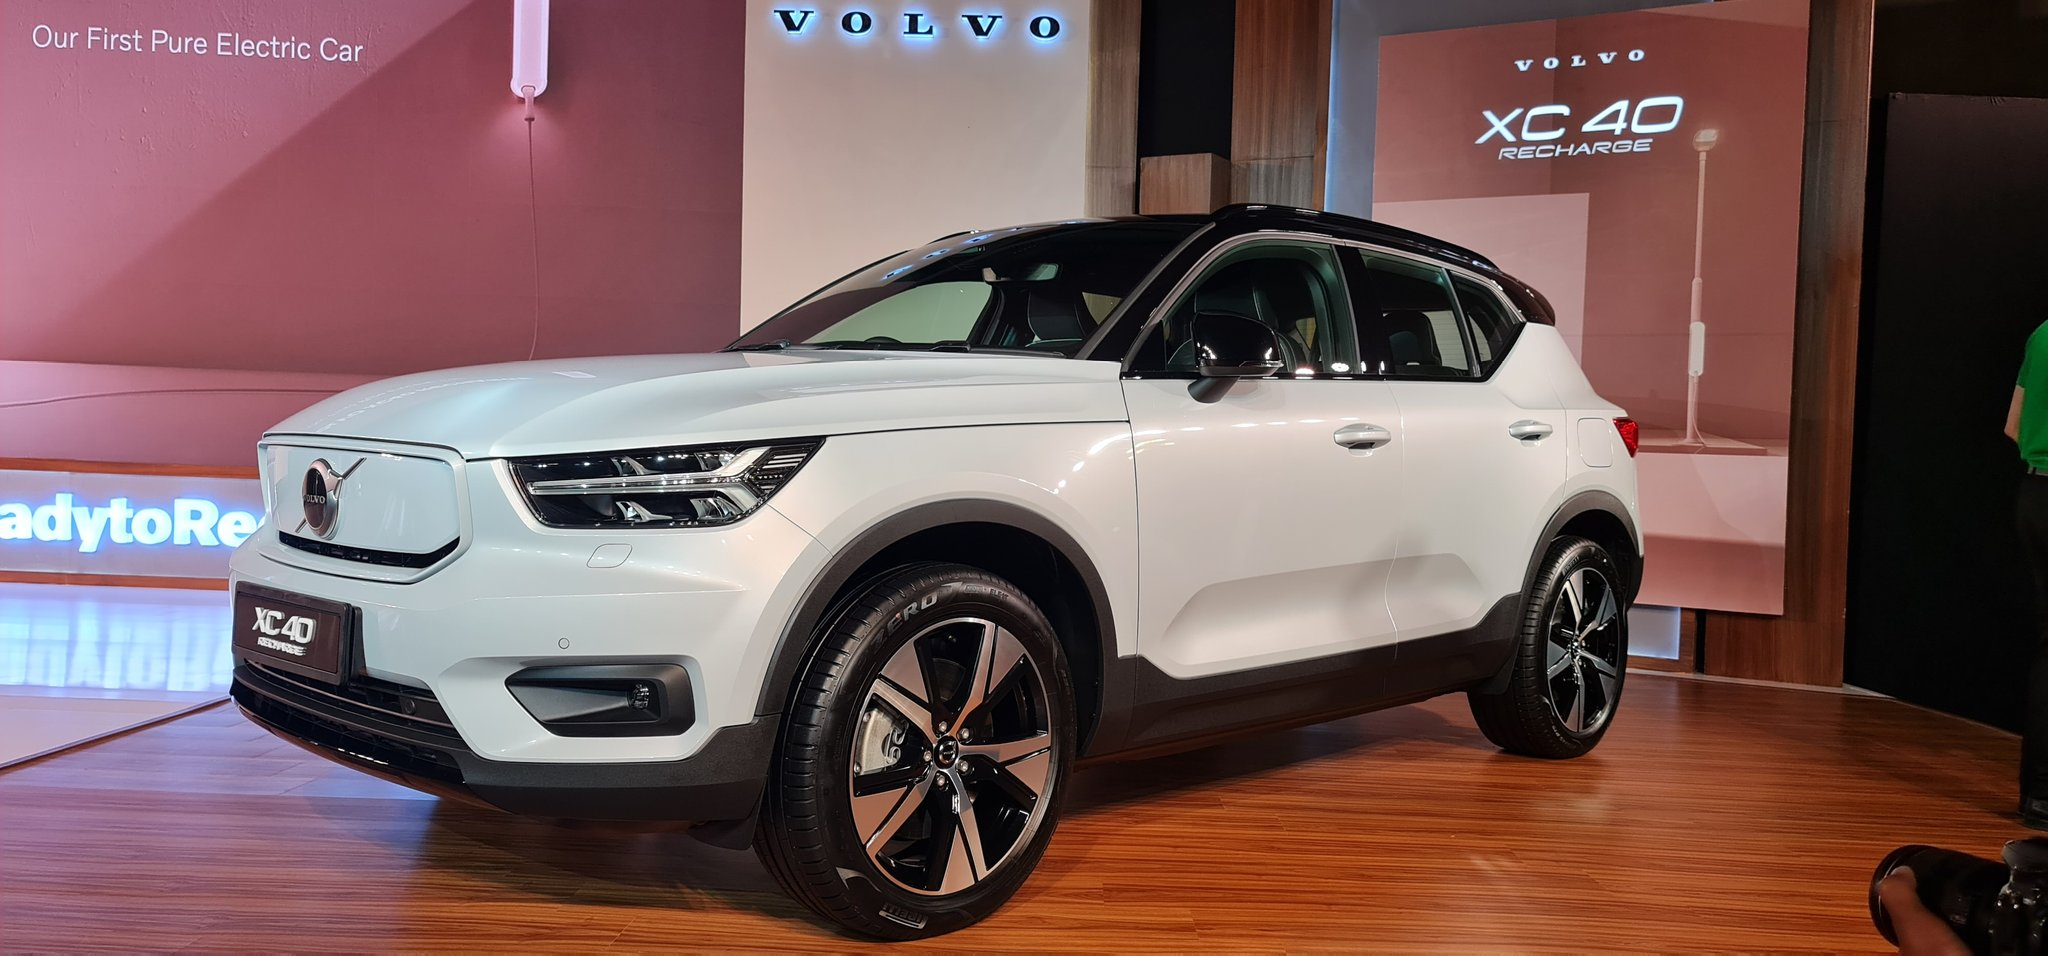 The all new @volvocarsin XC40 has a claimed driving cycle of 418kms in between charges as per European test cycles. Does 0-100kph in 4.9 seconds, permanent AWD and fast charging options.